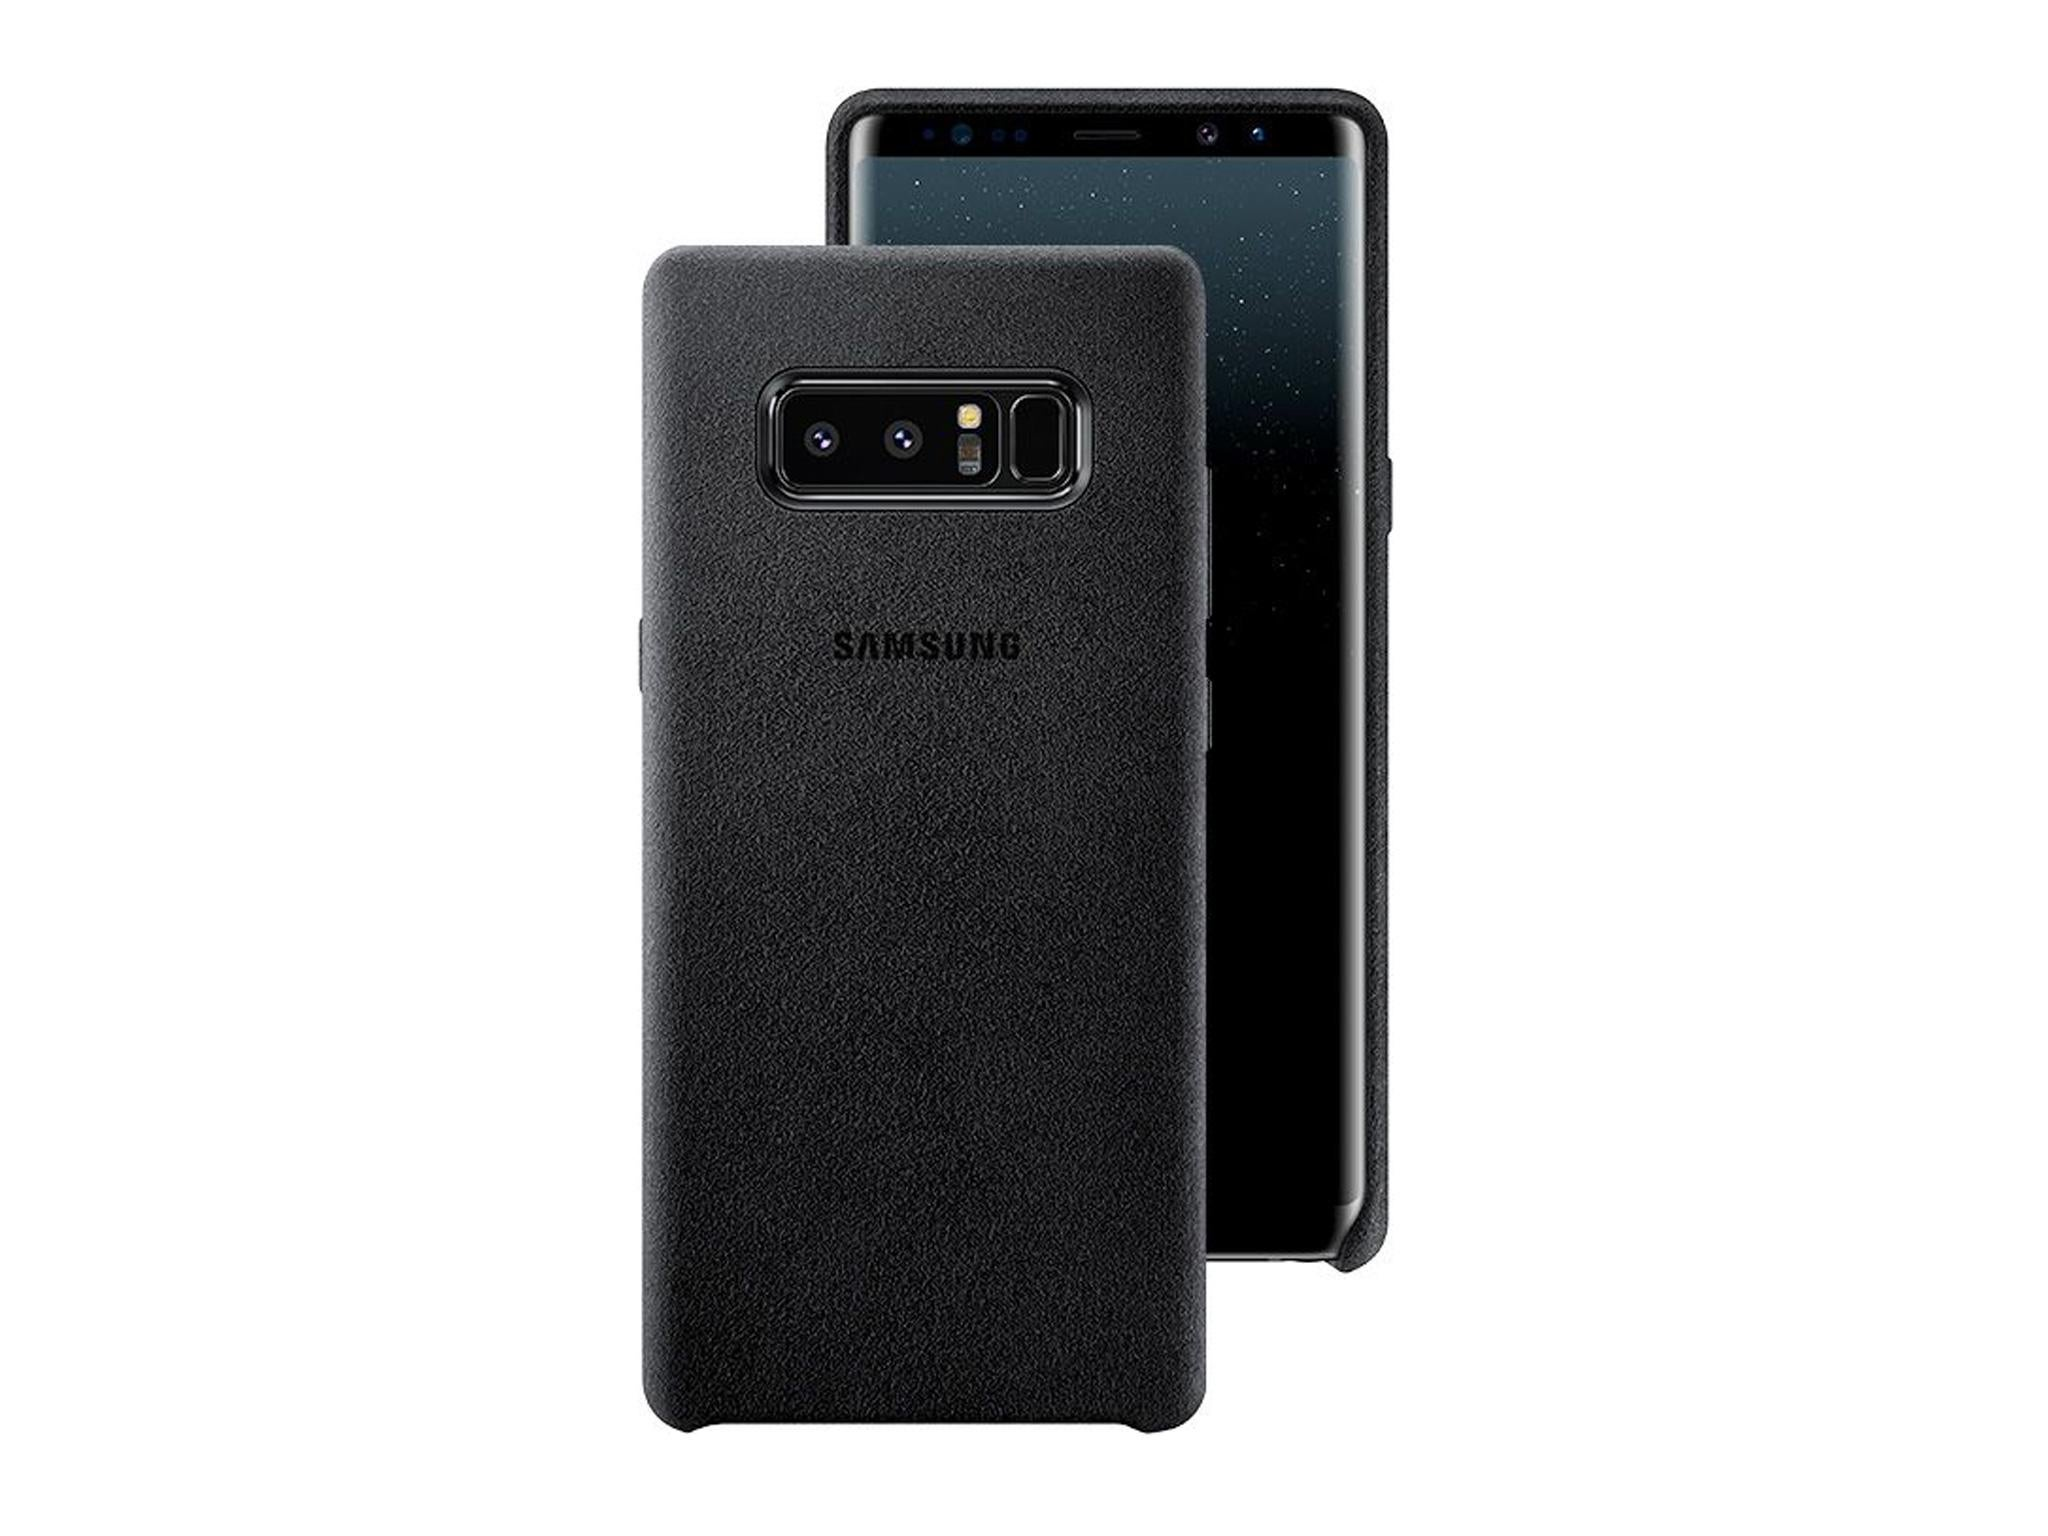 10 Best Samsung Galaxy Note 8 Cases The Independent Original Silicone Cover Casing For S8 Plus Note8 Alcantara Case 44